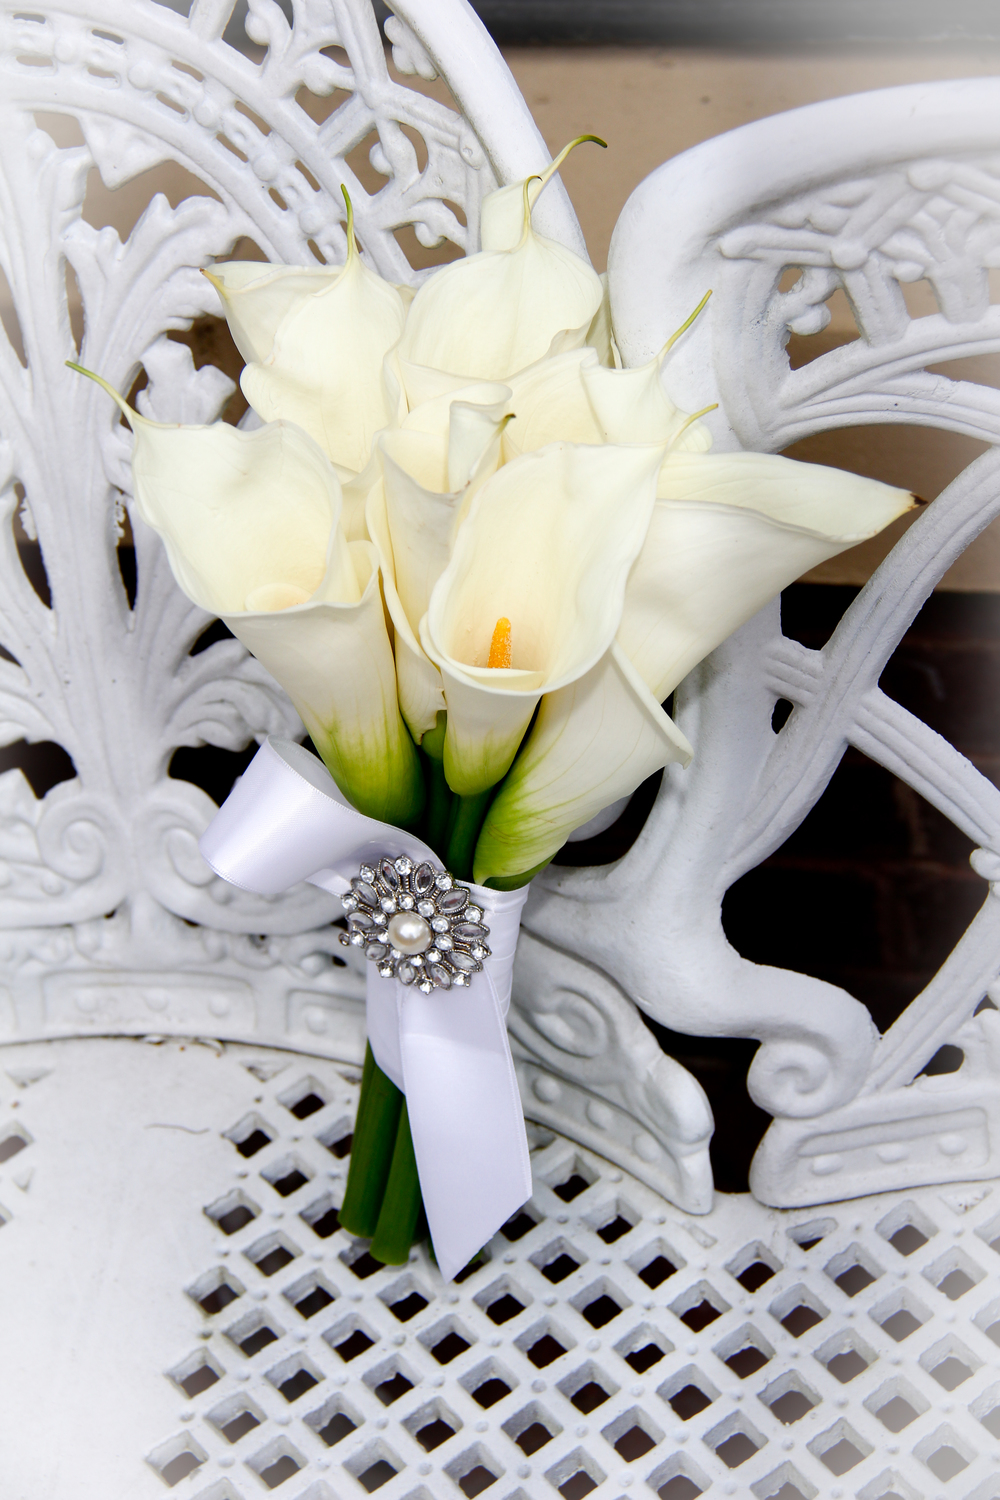 Savannah Wedding, Giant Calla Lily bride's bouquet, wedding flowers, white Calla